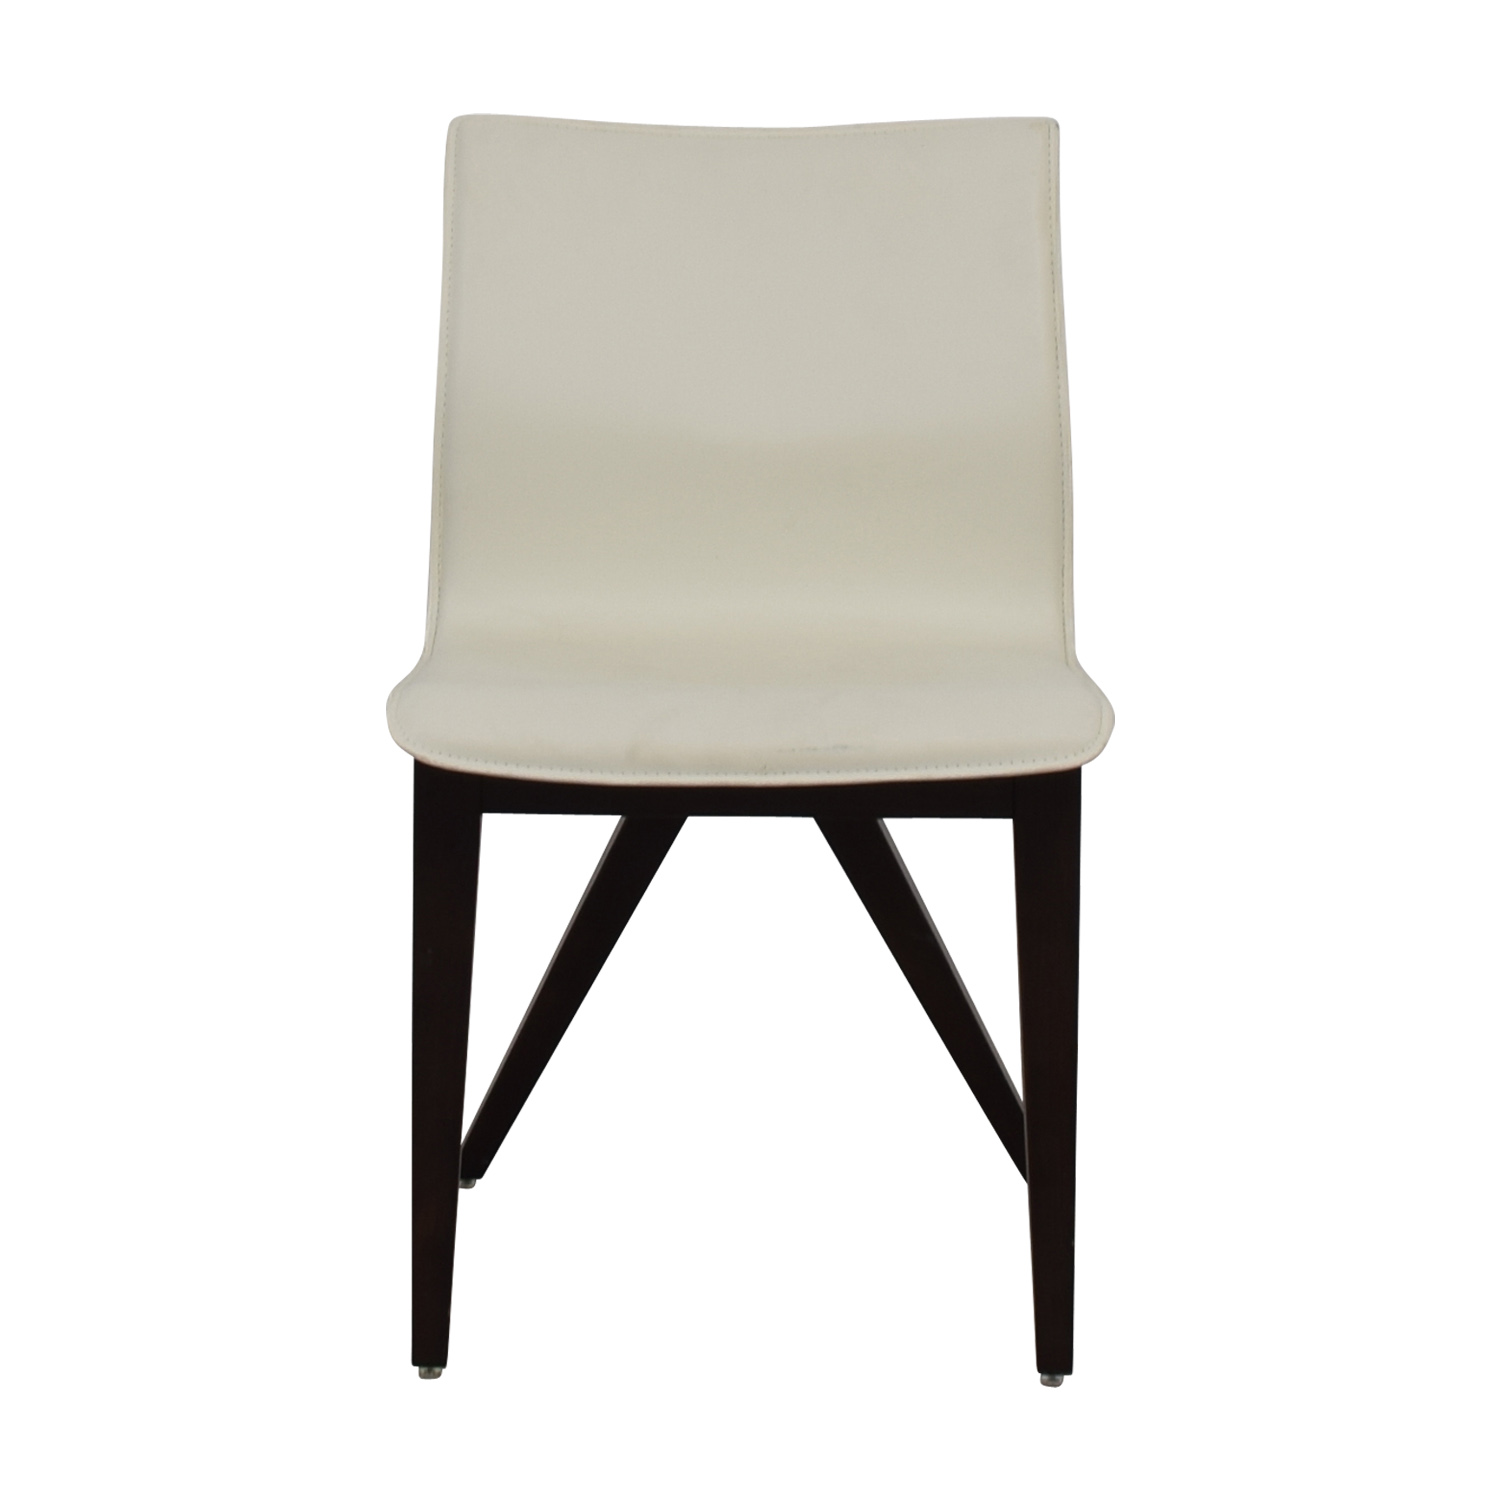 Cliff Young Cliff Young X-Back White Leather Chair coupon